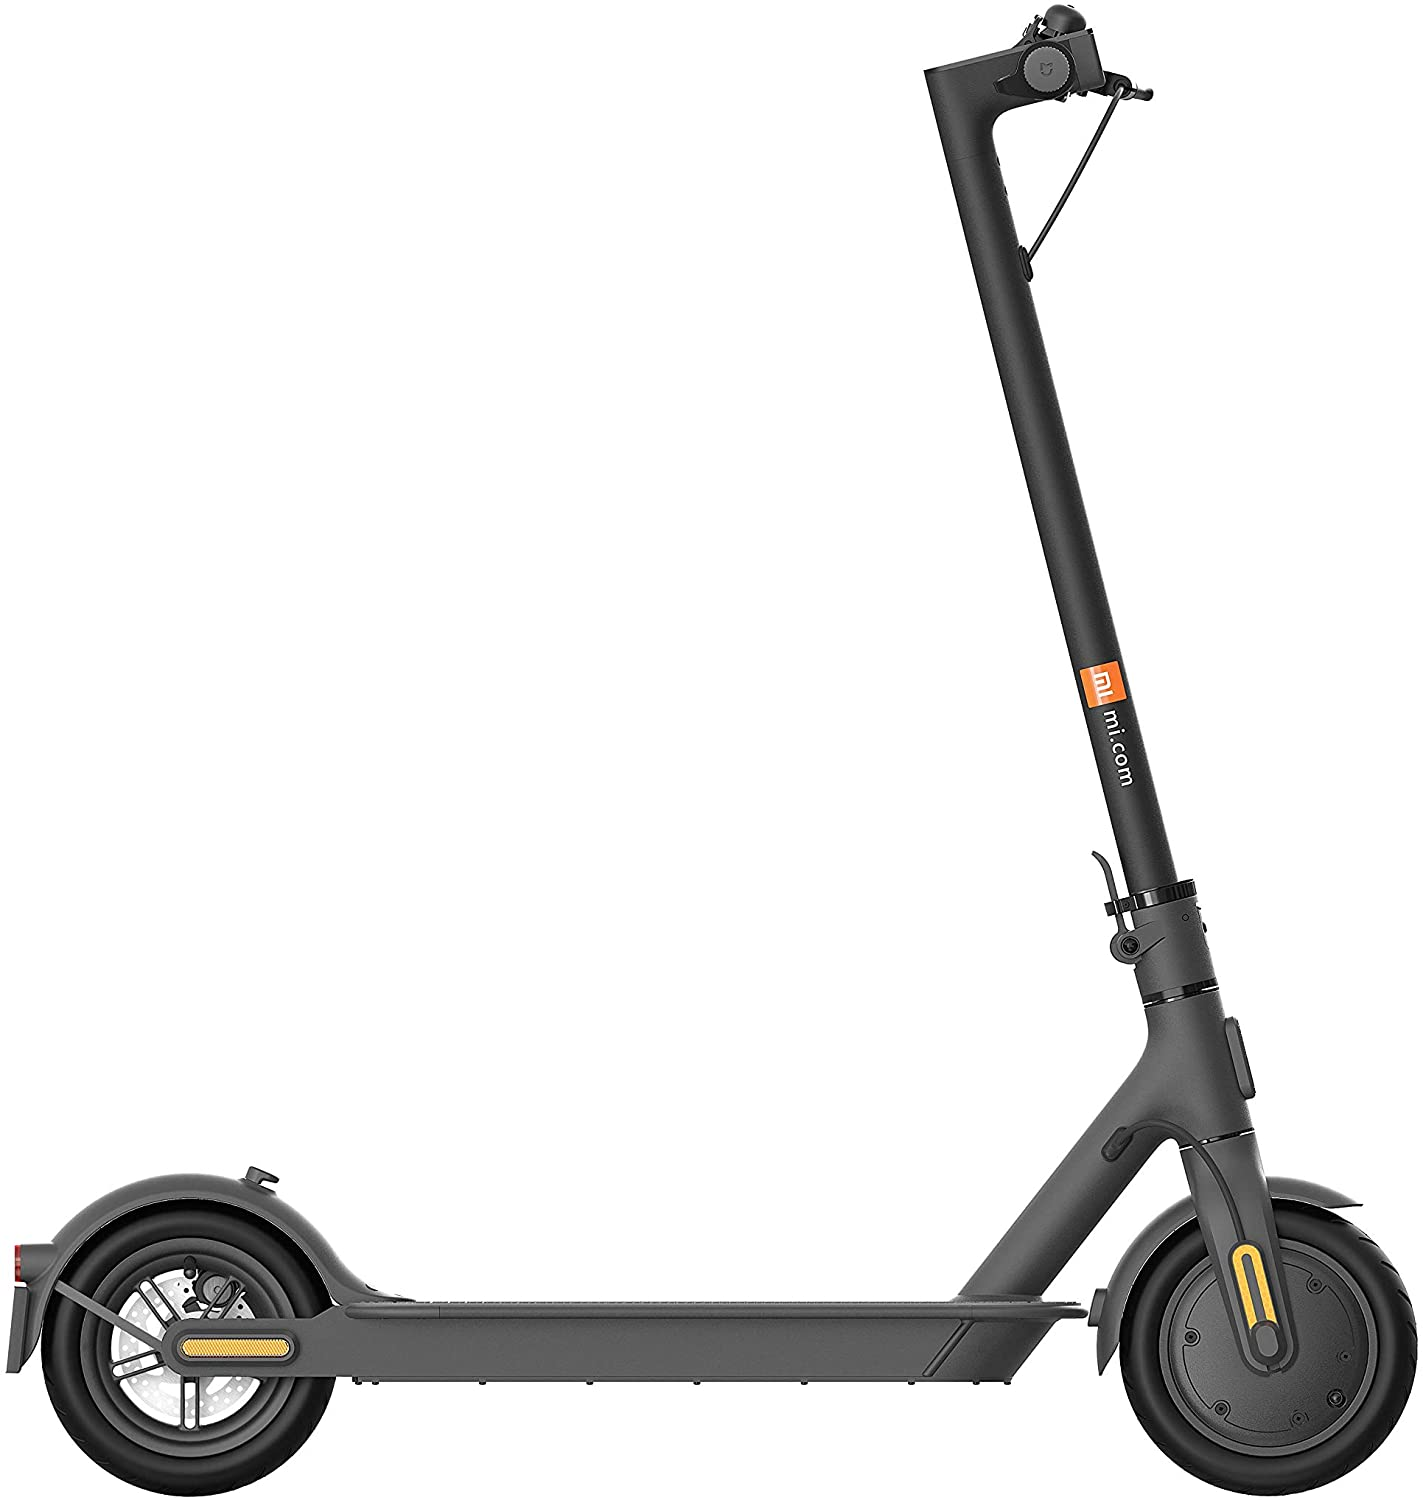 Genuine Xiaomi M365 1S Electric Scooter